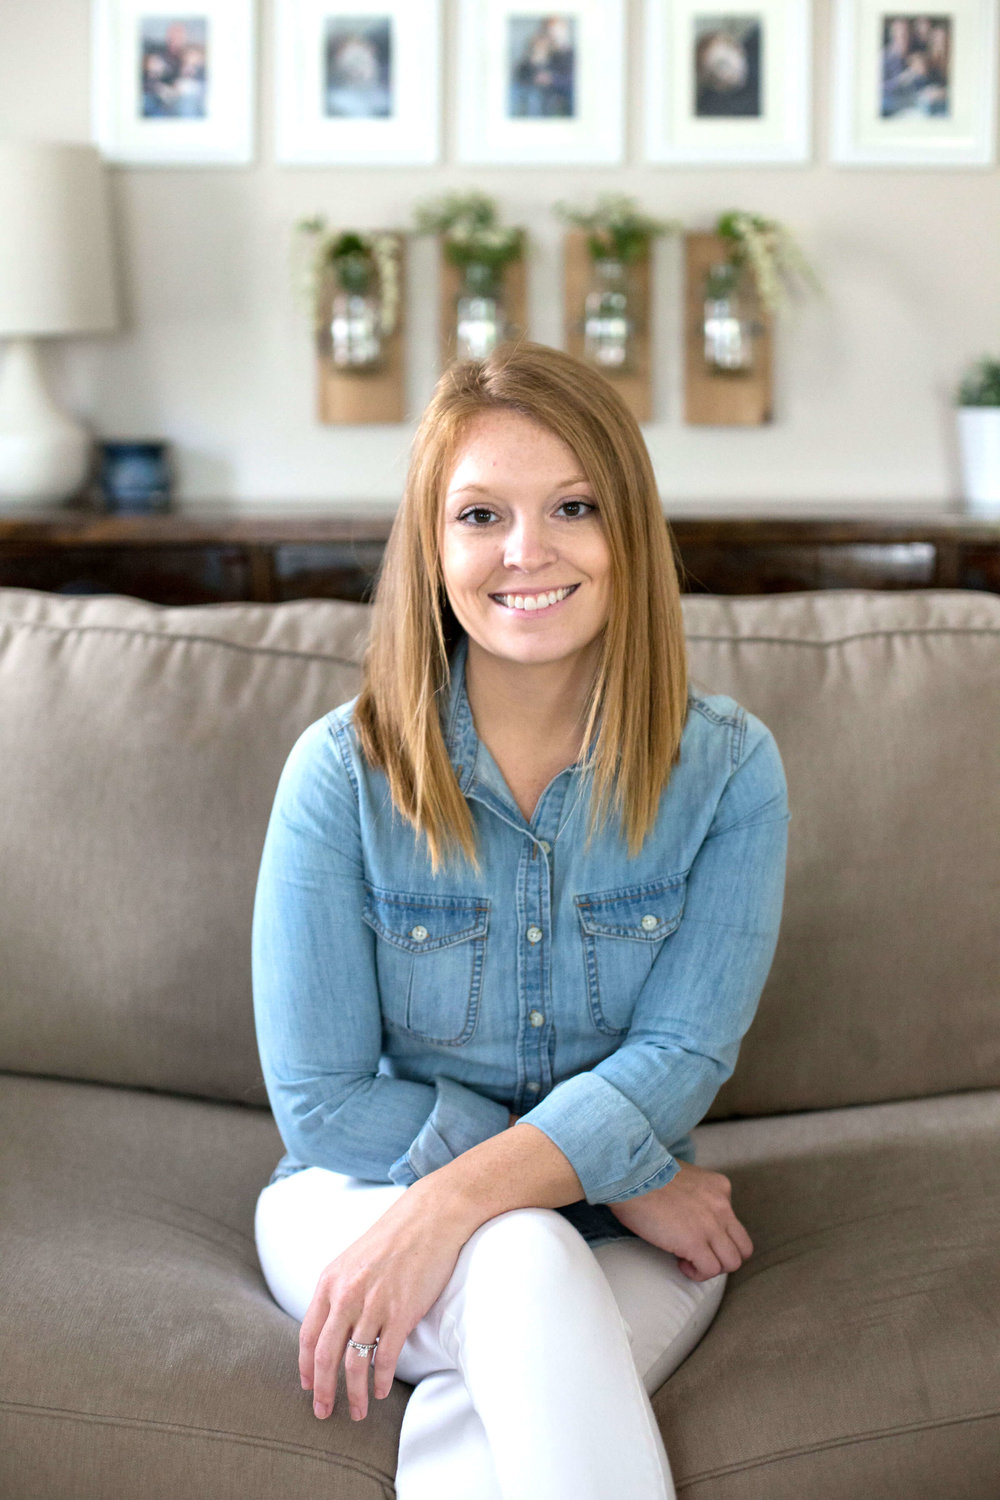 Danielle Boerger, professional organizer and owner of Simplify in Style, Cincinnati OH